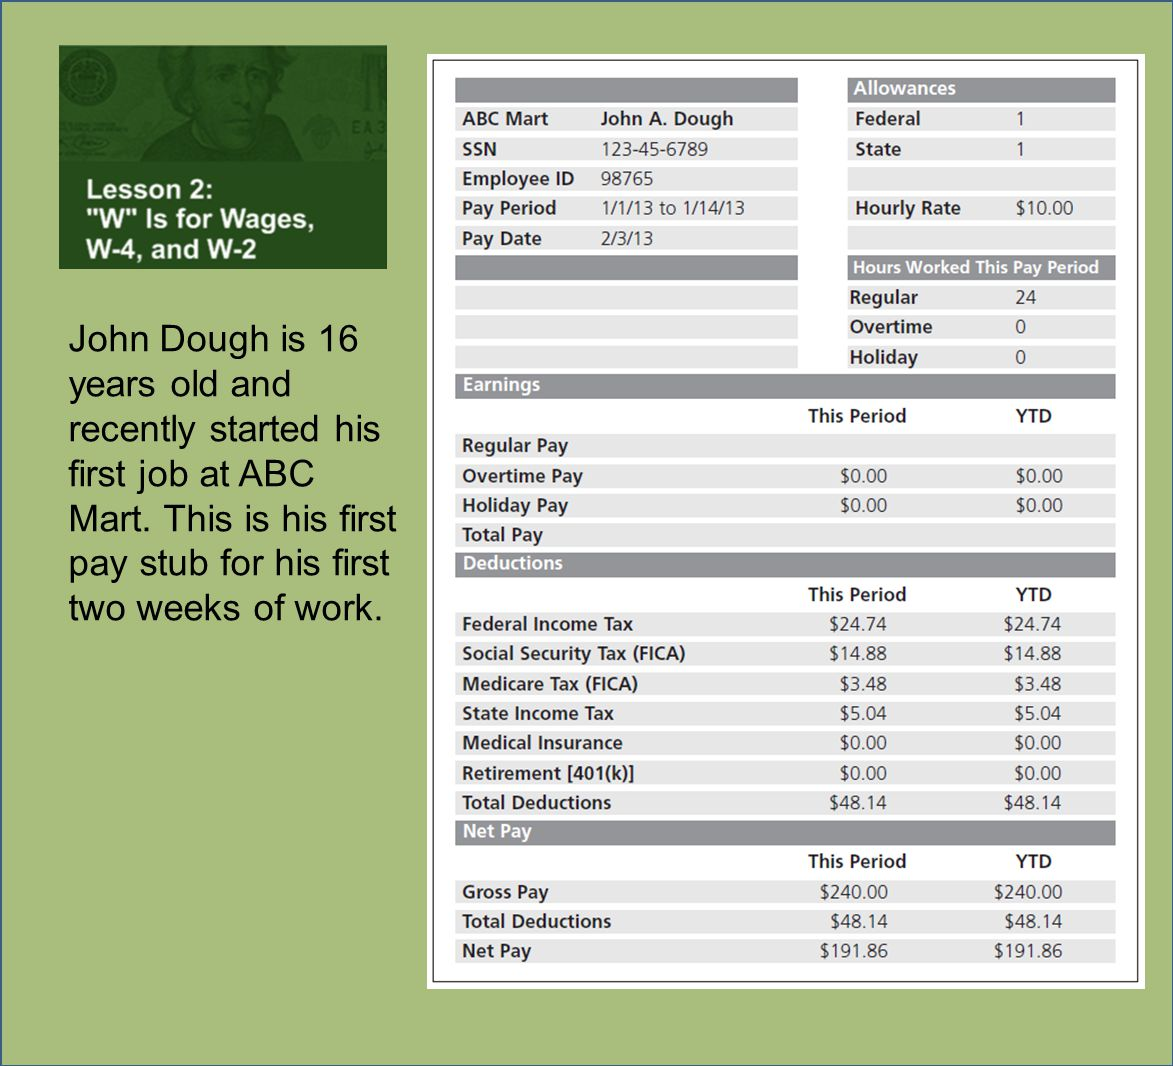 John Dough is 16 years old and recently started his first job at ABC Mart.